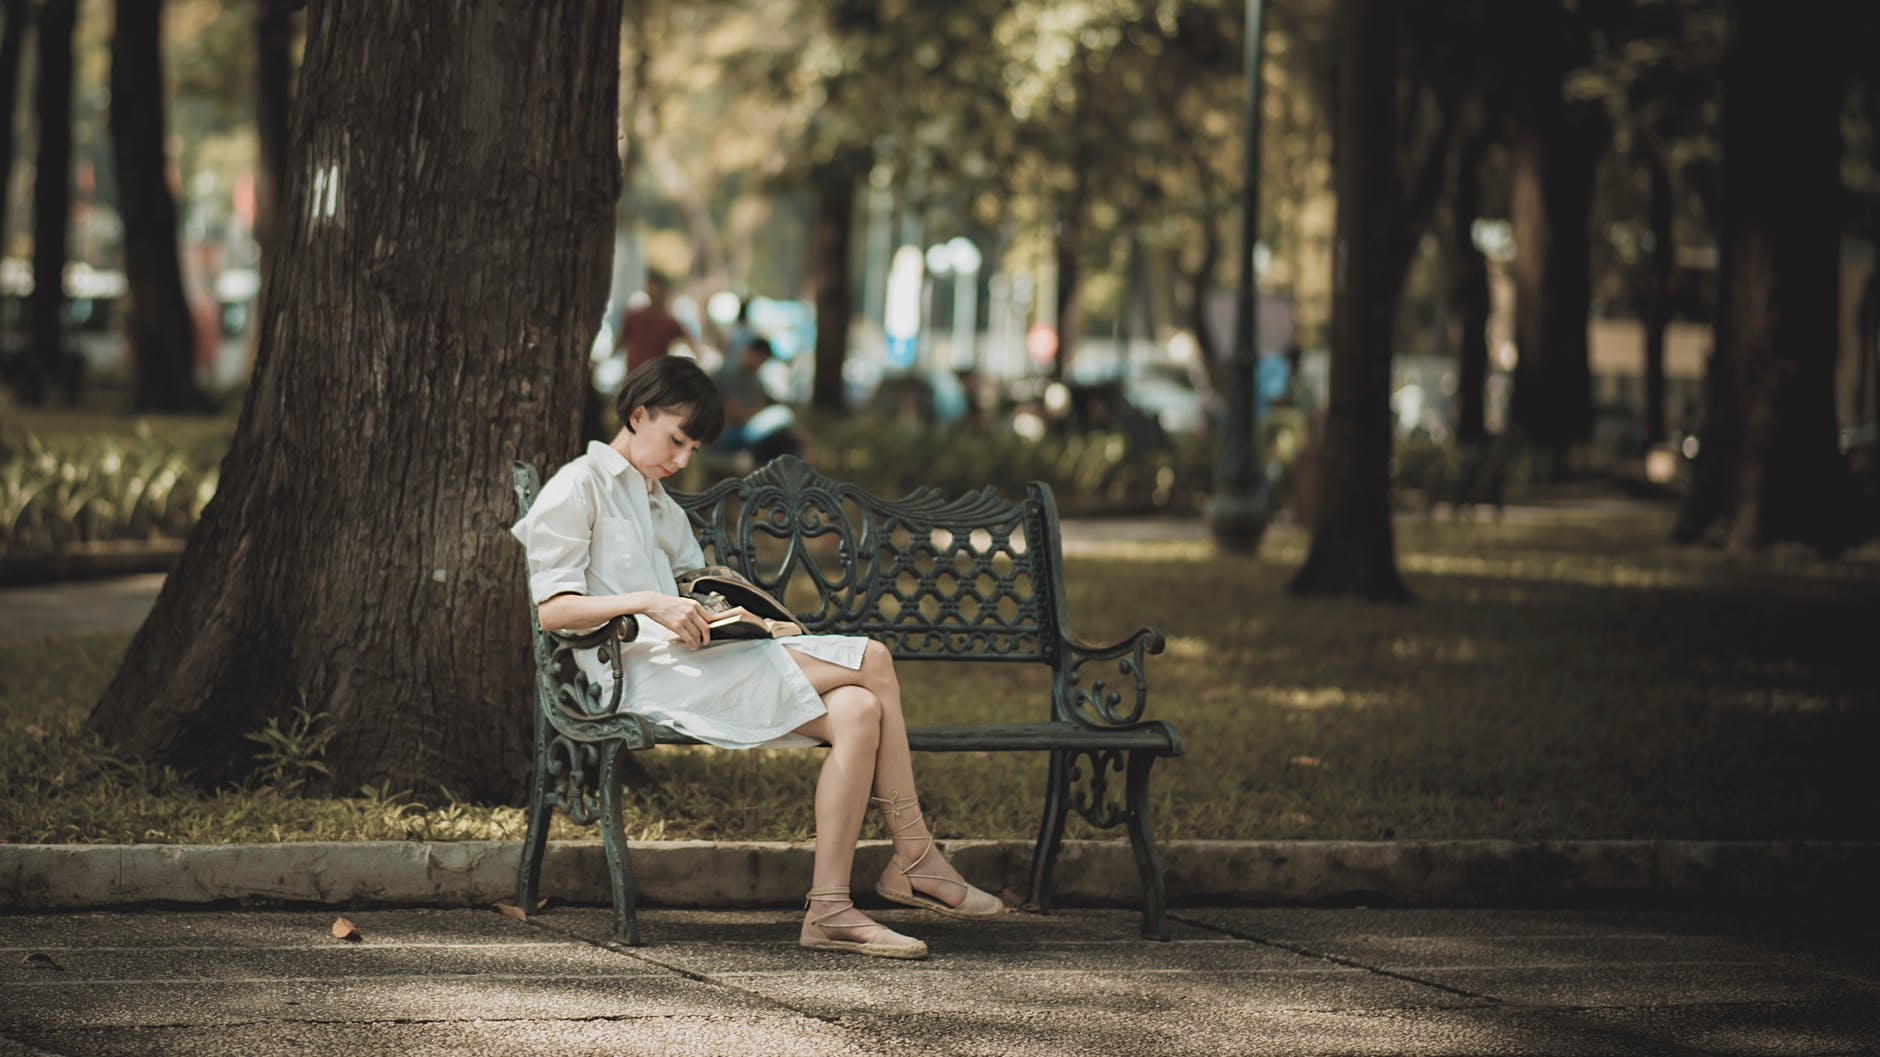 Photo of Woman Sitting in the Bench Near Tree, Photo of Woman Sitting in the Bench Near Tree